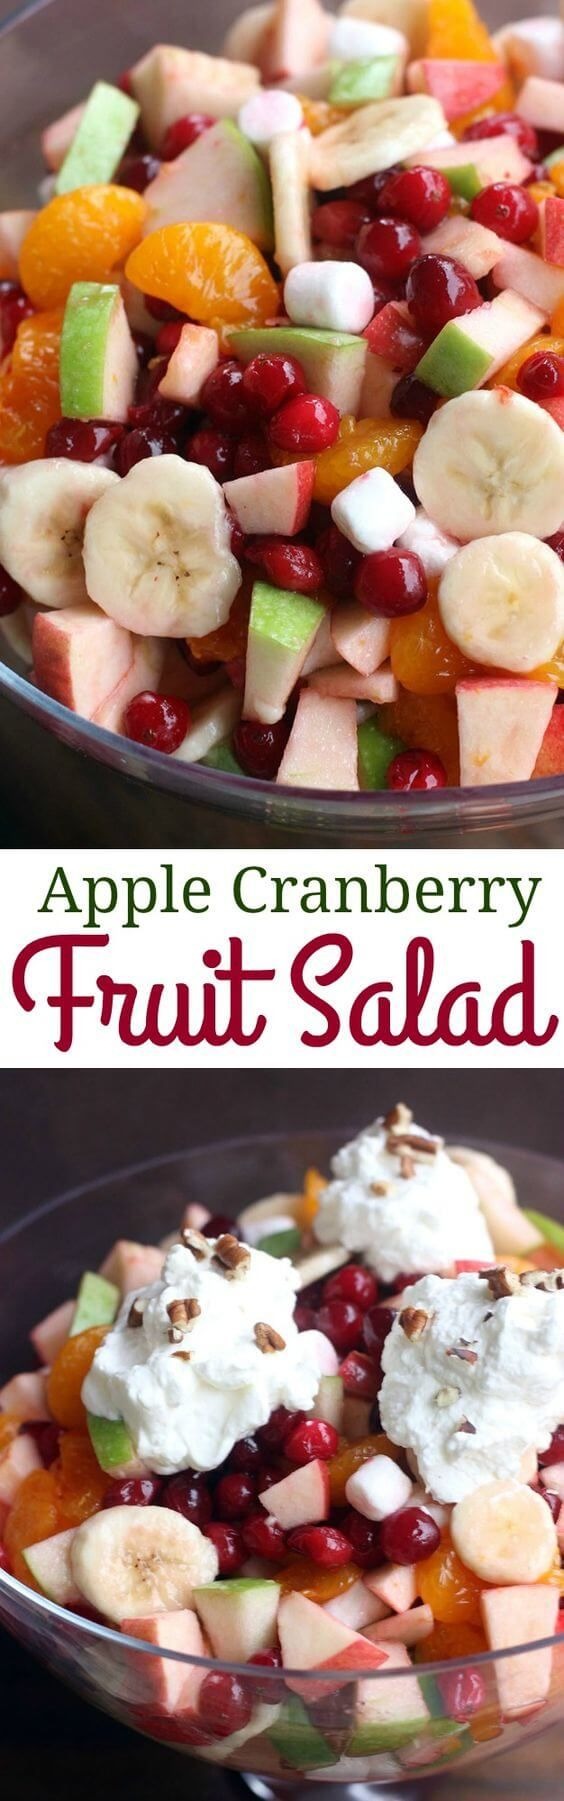 Apple Cranberry Fruit Salad from Tastes Better From Scratch